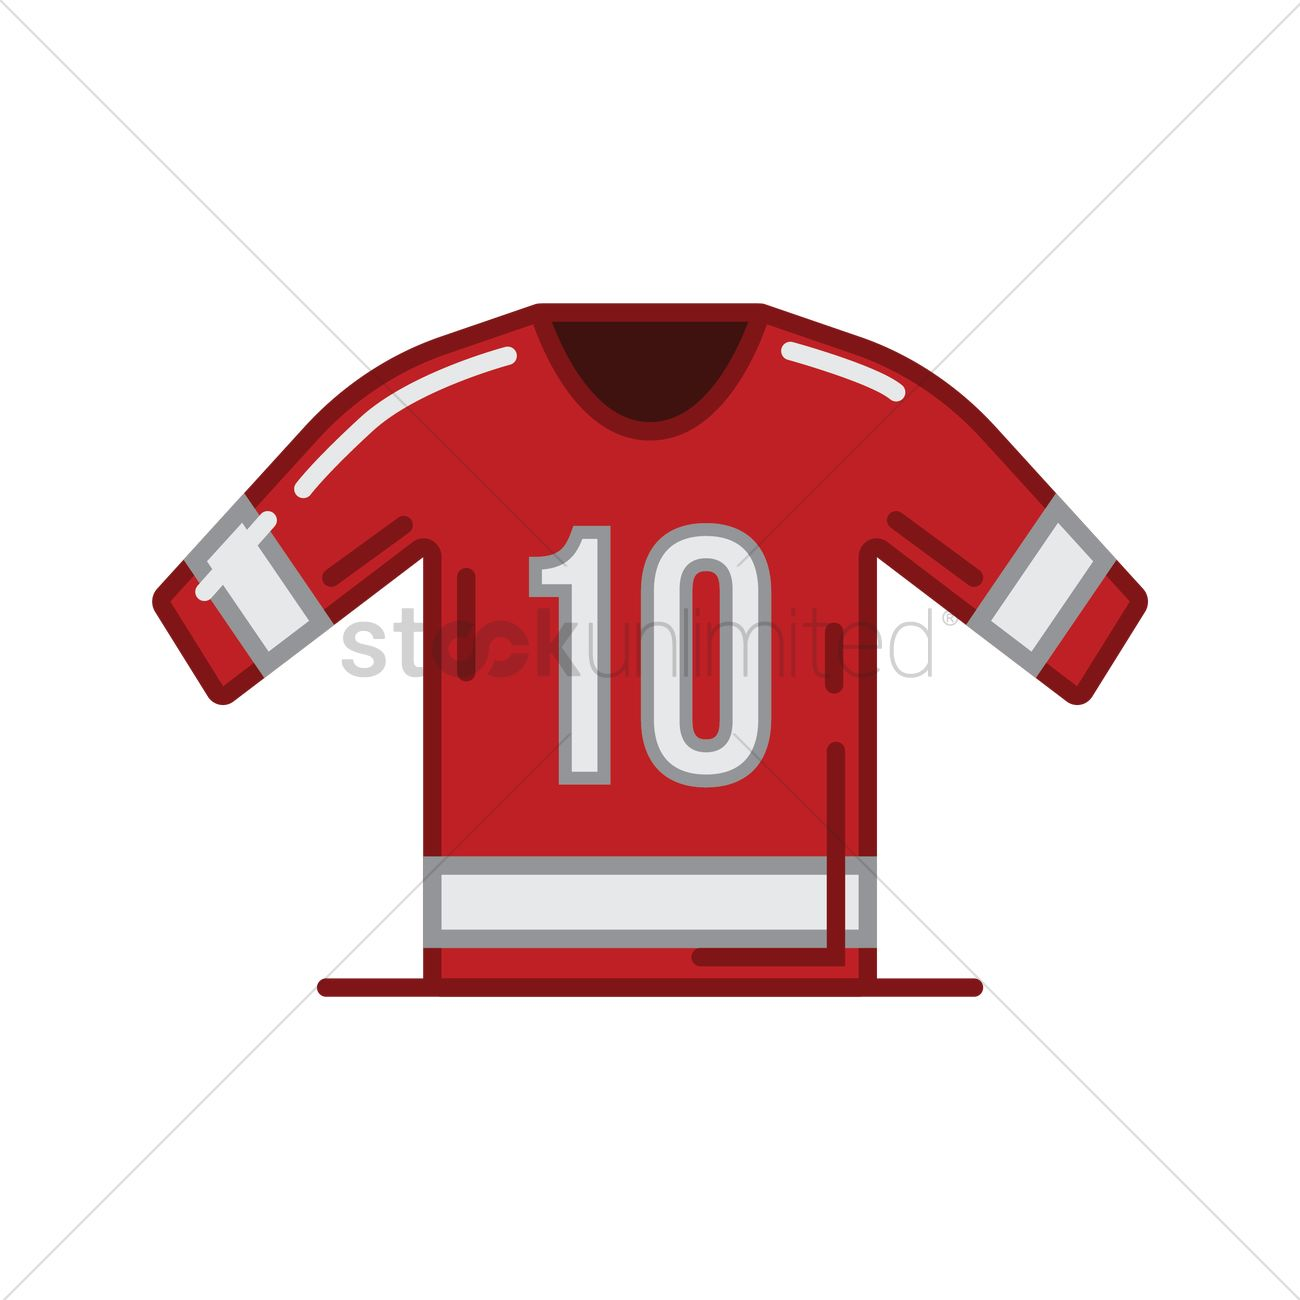 3999f2d00c8 Ice hockey jersey Vector Image - 1962979